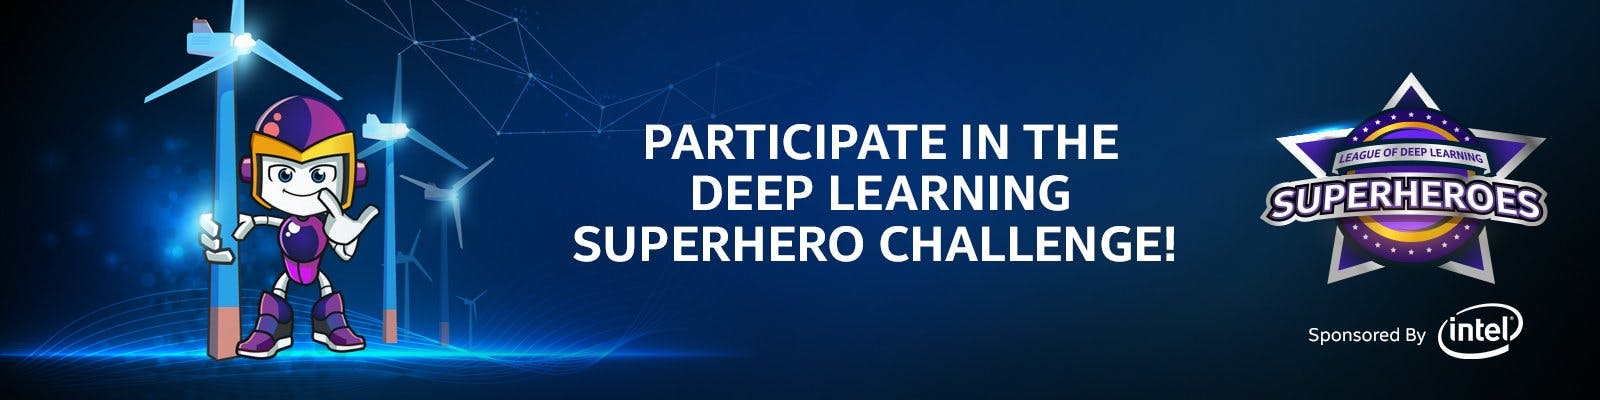 Deep Learning Superhero Challenge